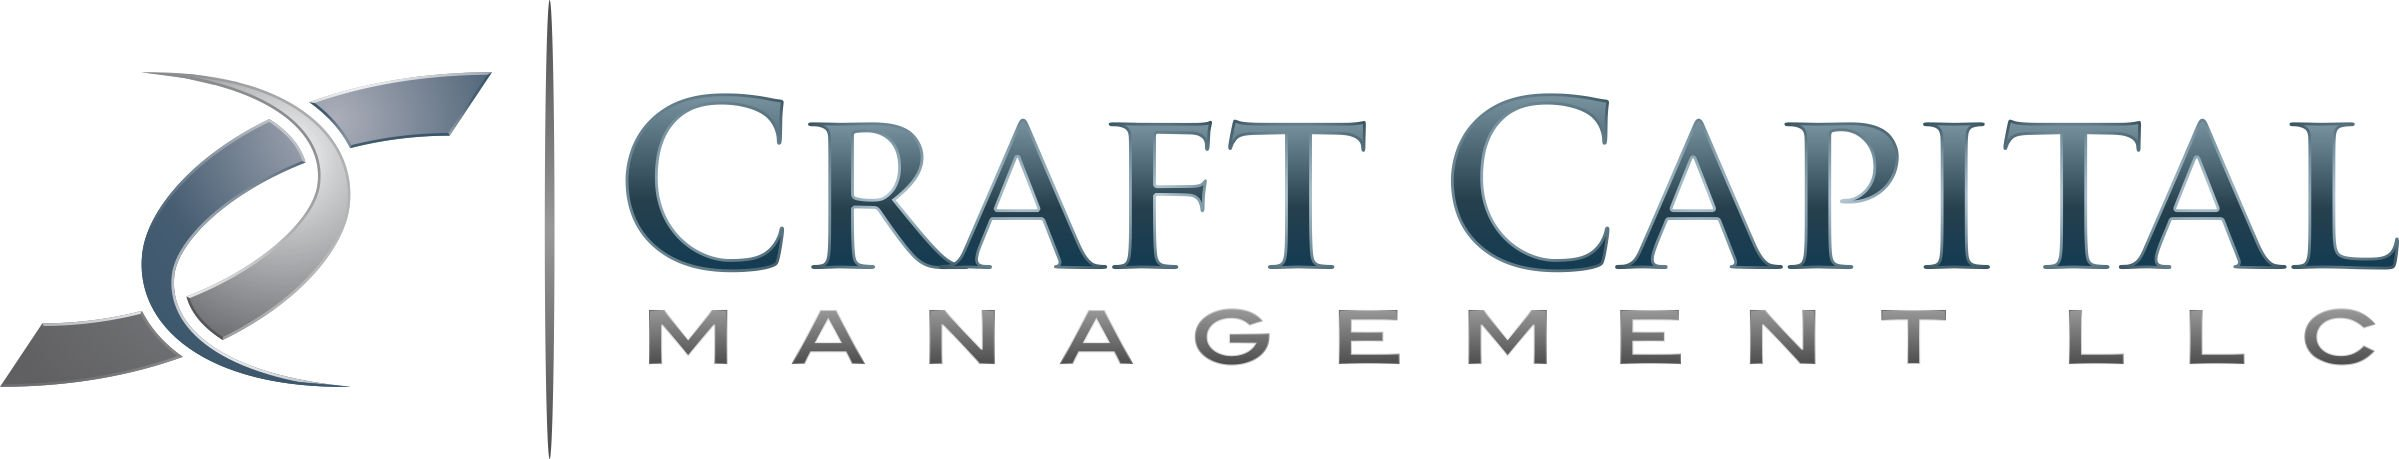 Craft Capital Management LLC